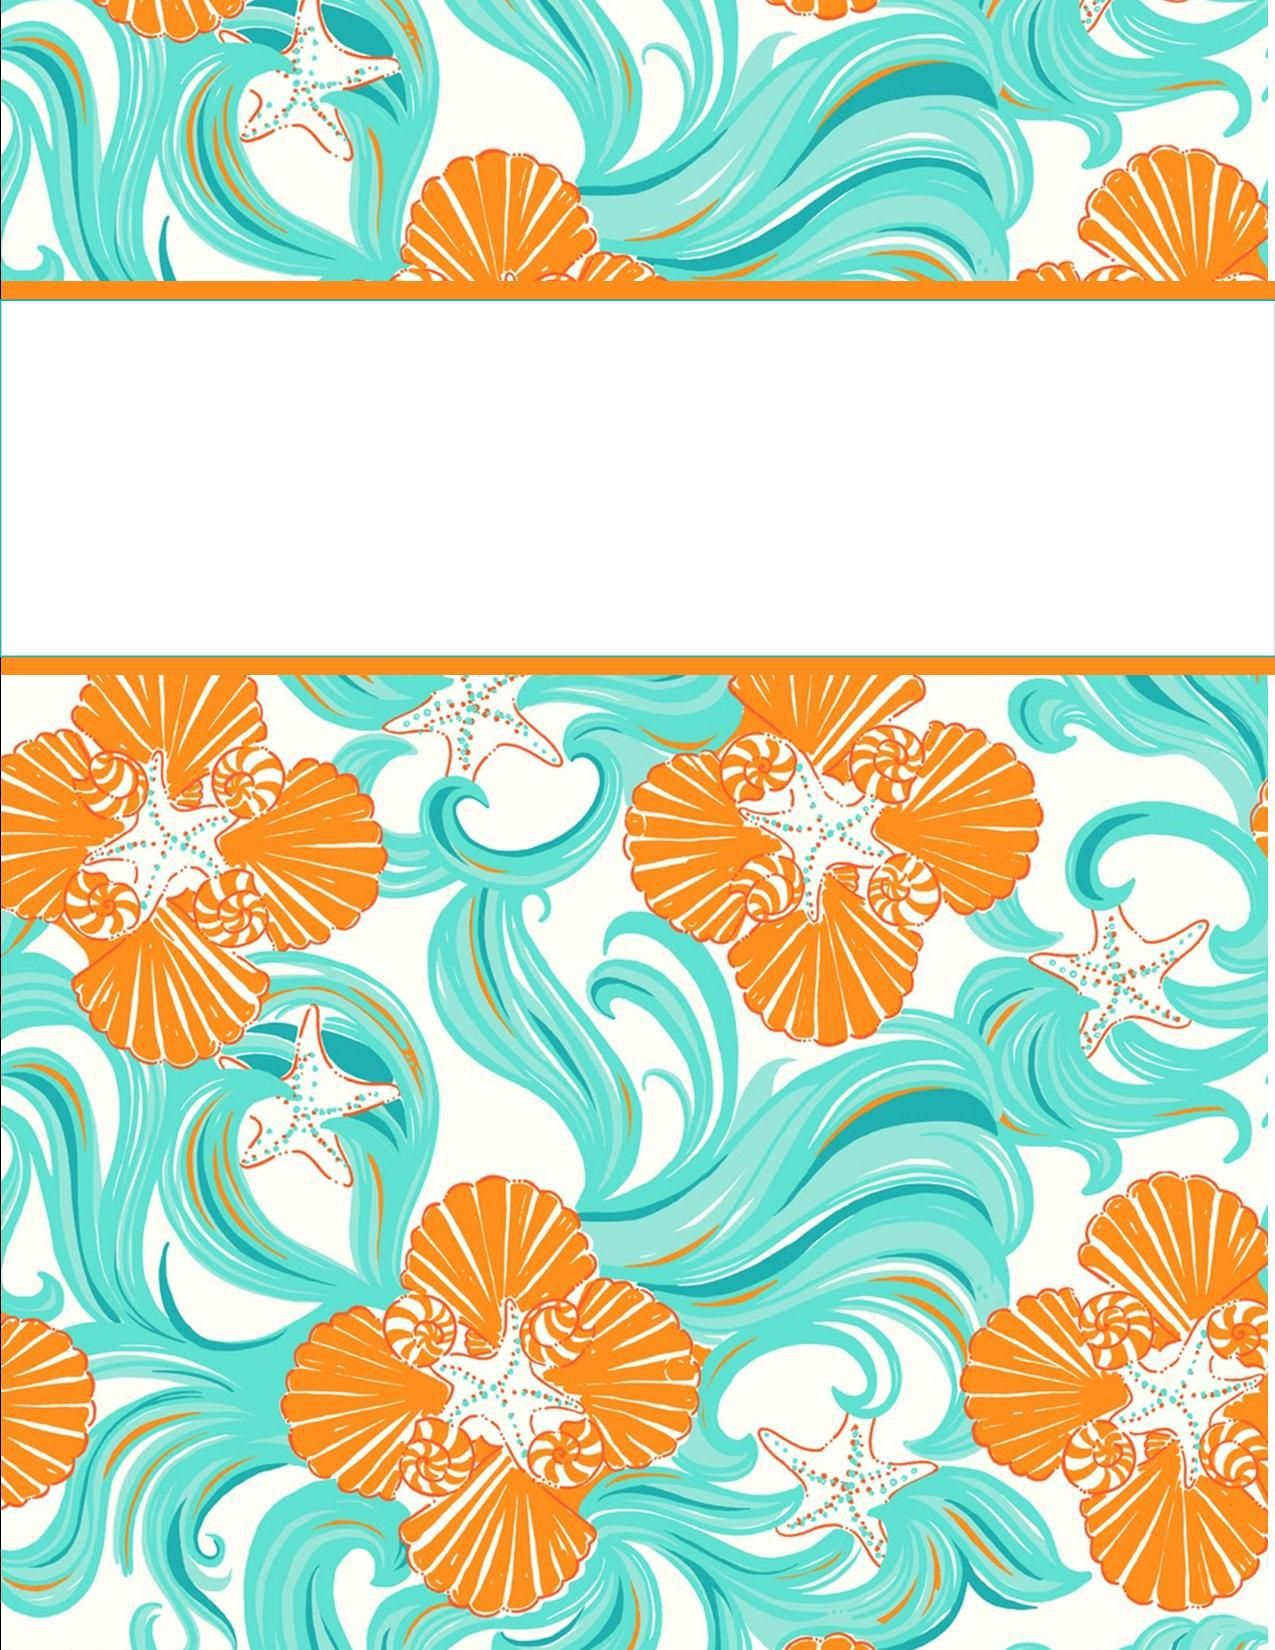 My Cute Binder Covers Cute Binder Covers Binder Cover Templates